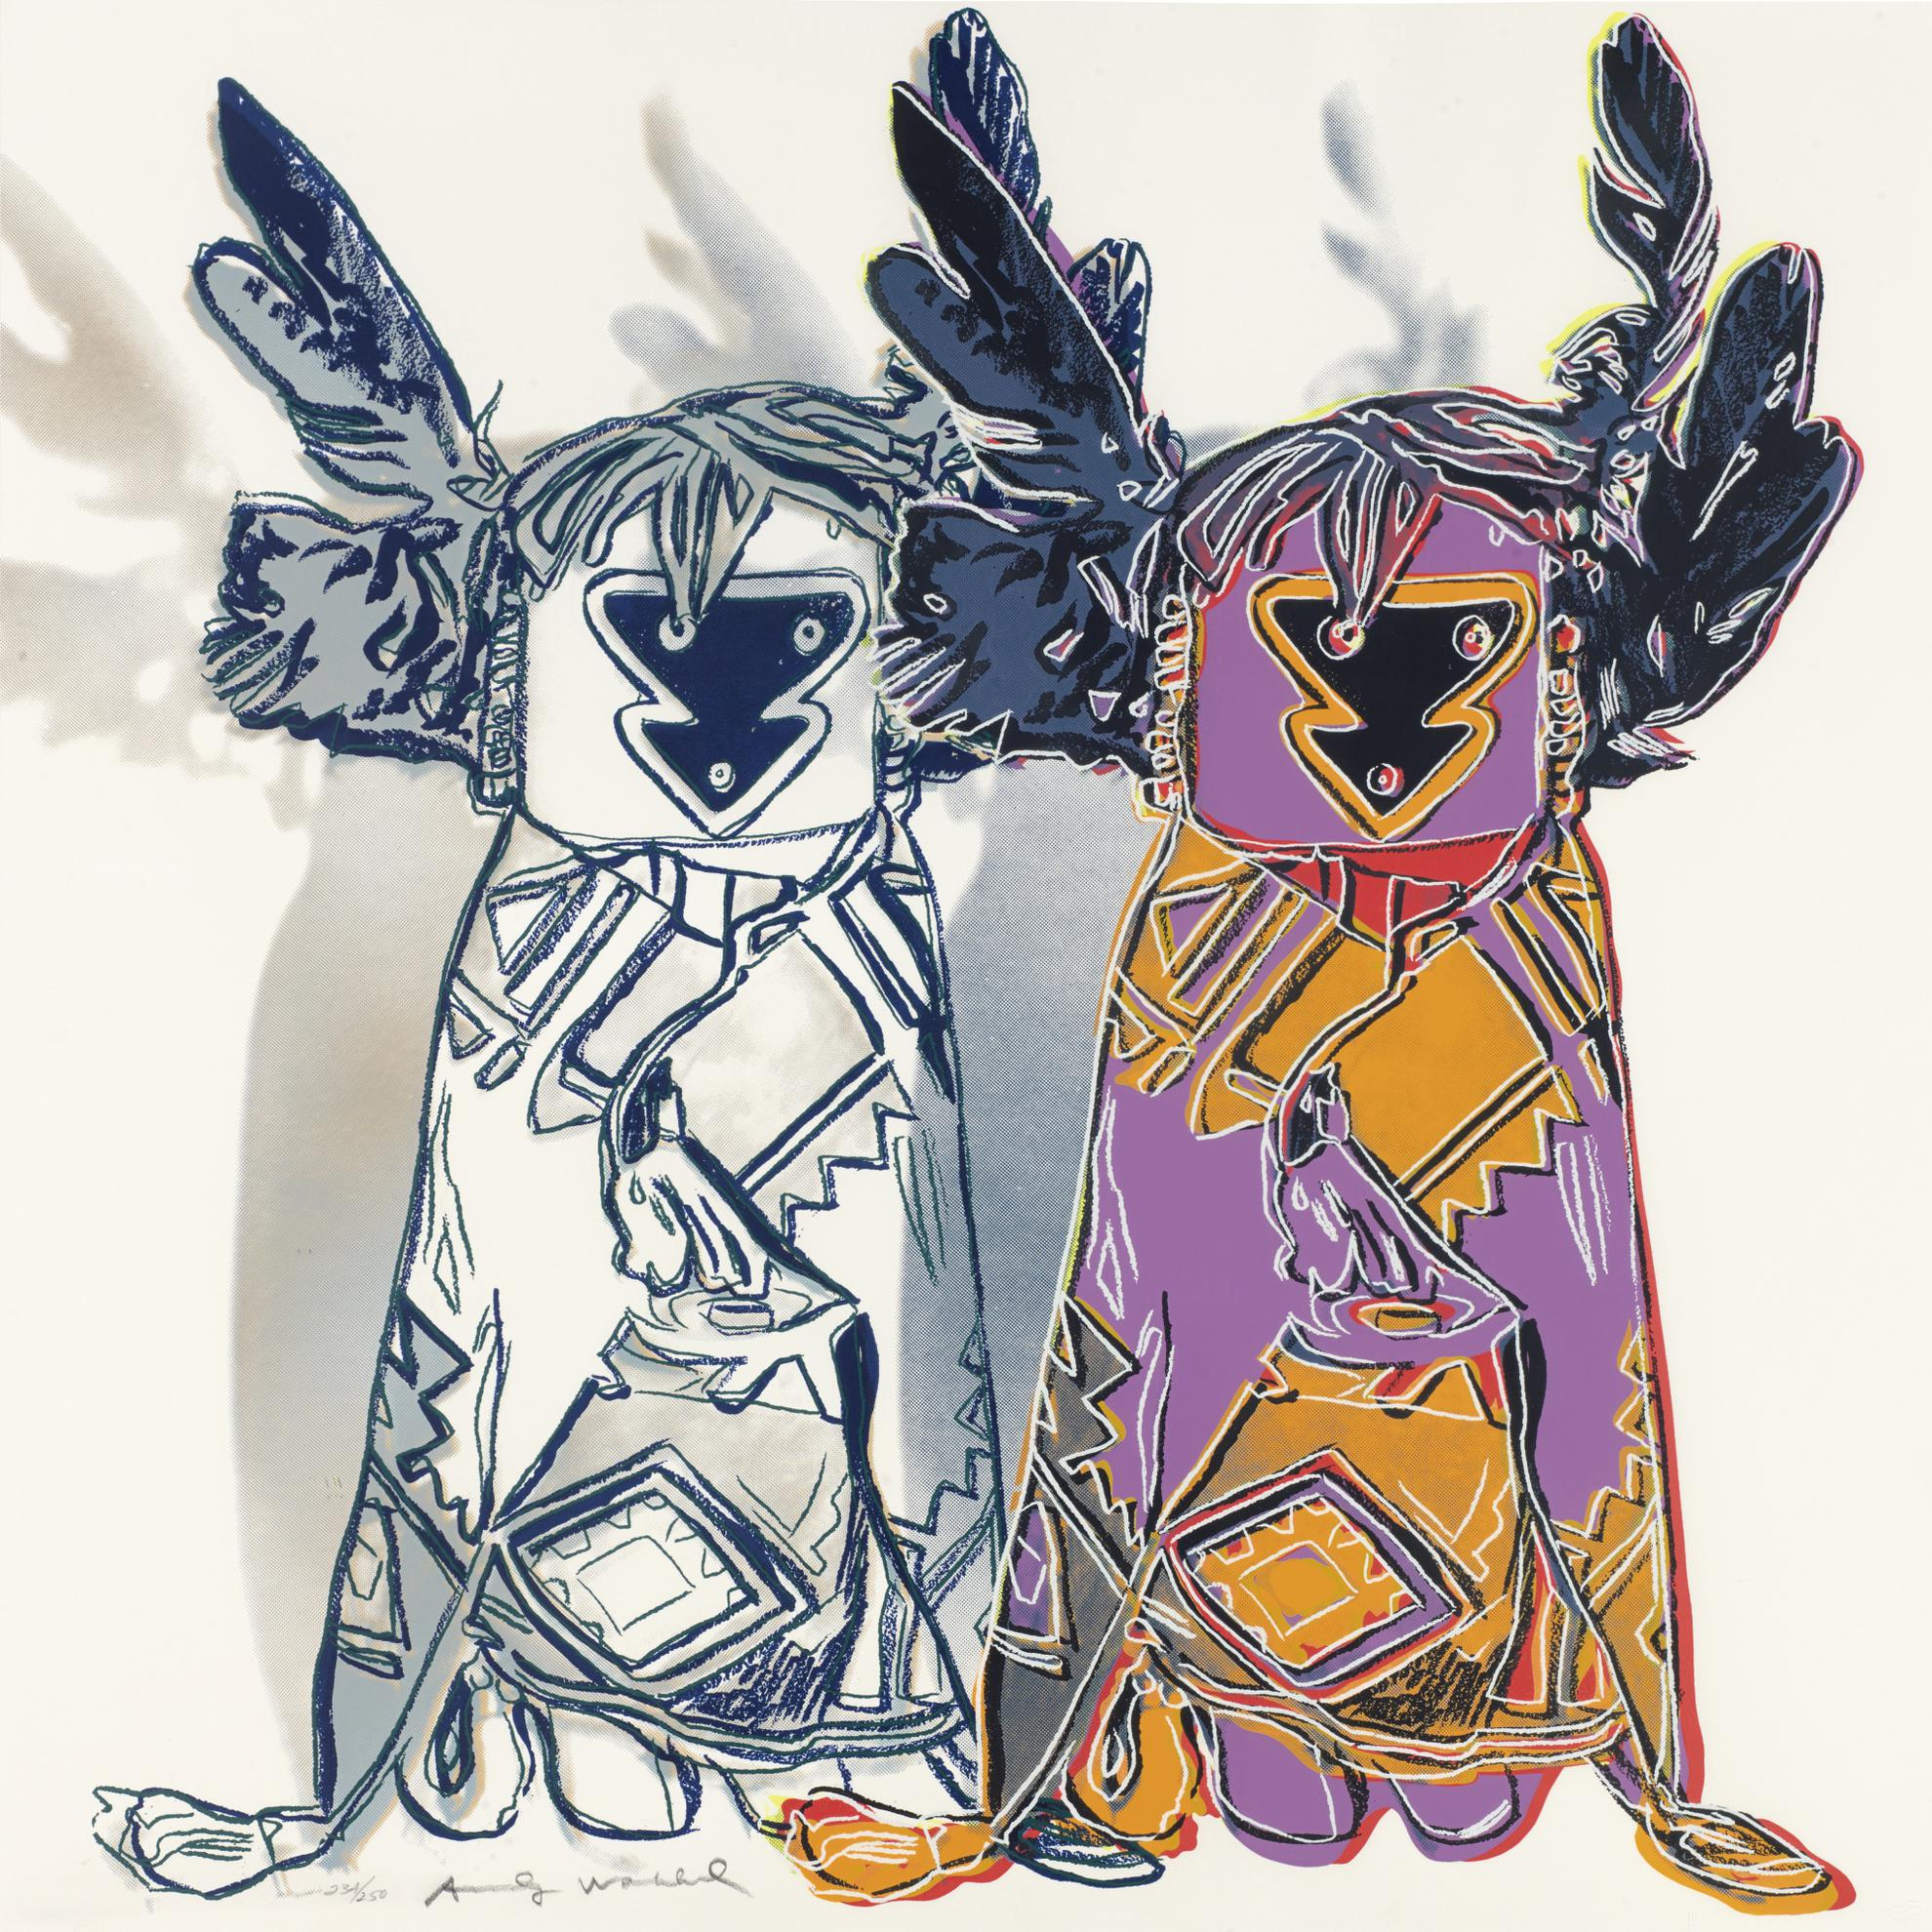 Andy Warhol-Kachina Dolls (F. & S. II.381)-1986